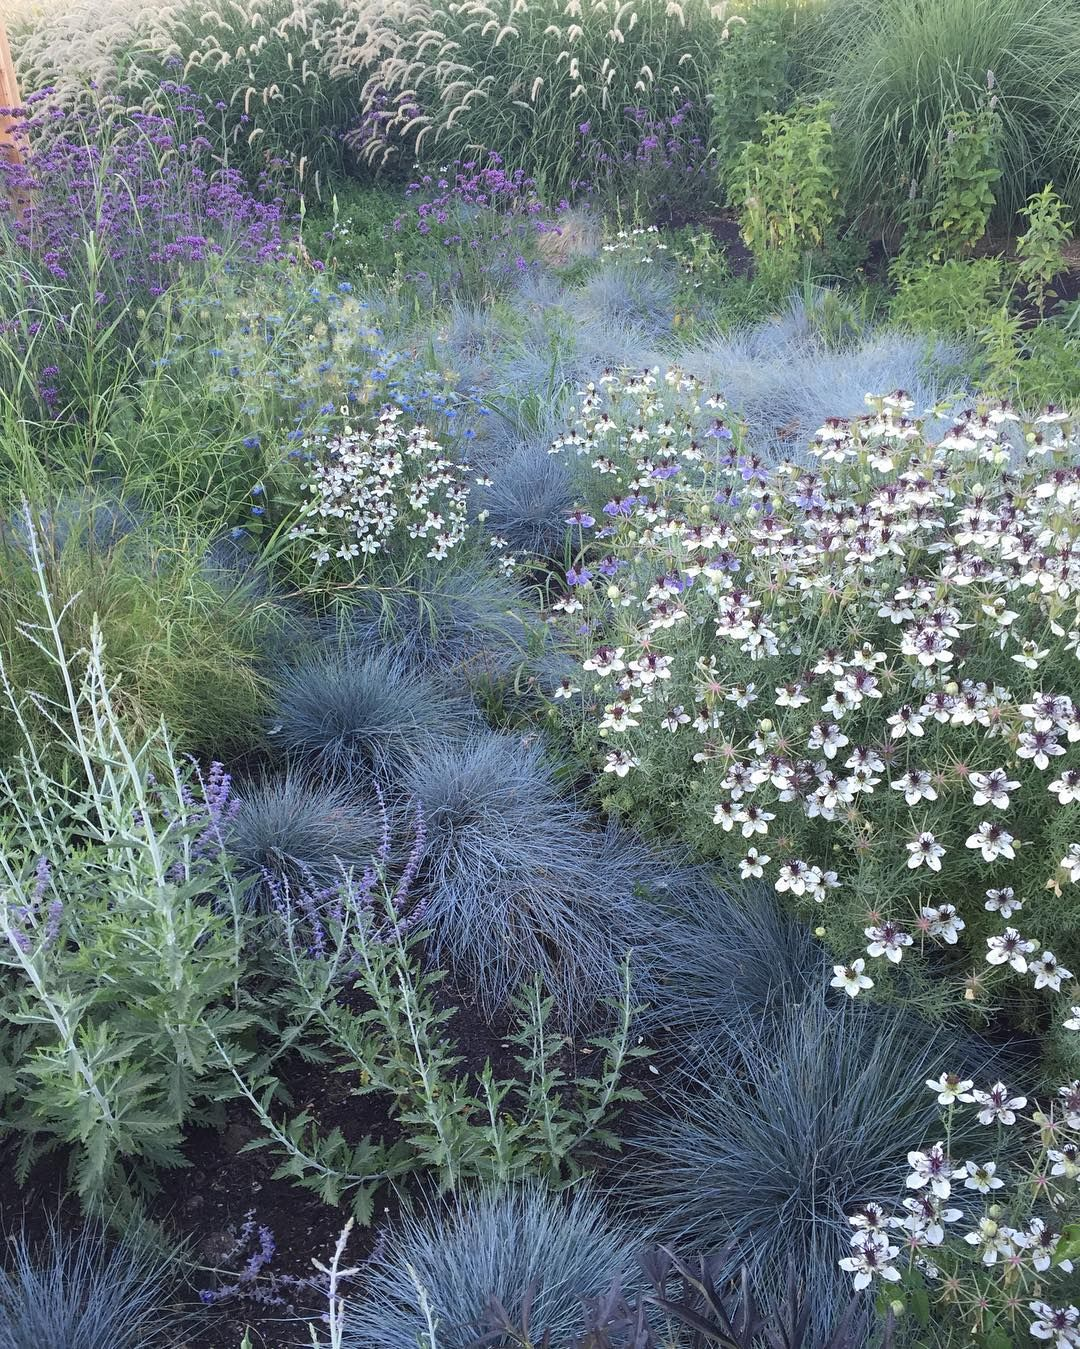 """118 Likes, 10 Comments - Homestead Design Collective (@homesteaddesigncollective) on Instagram: """"Nigella hispanica 'African Bride' + Blue Fescue in our meadow planting at @sunsetmag 's test…"""""""